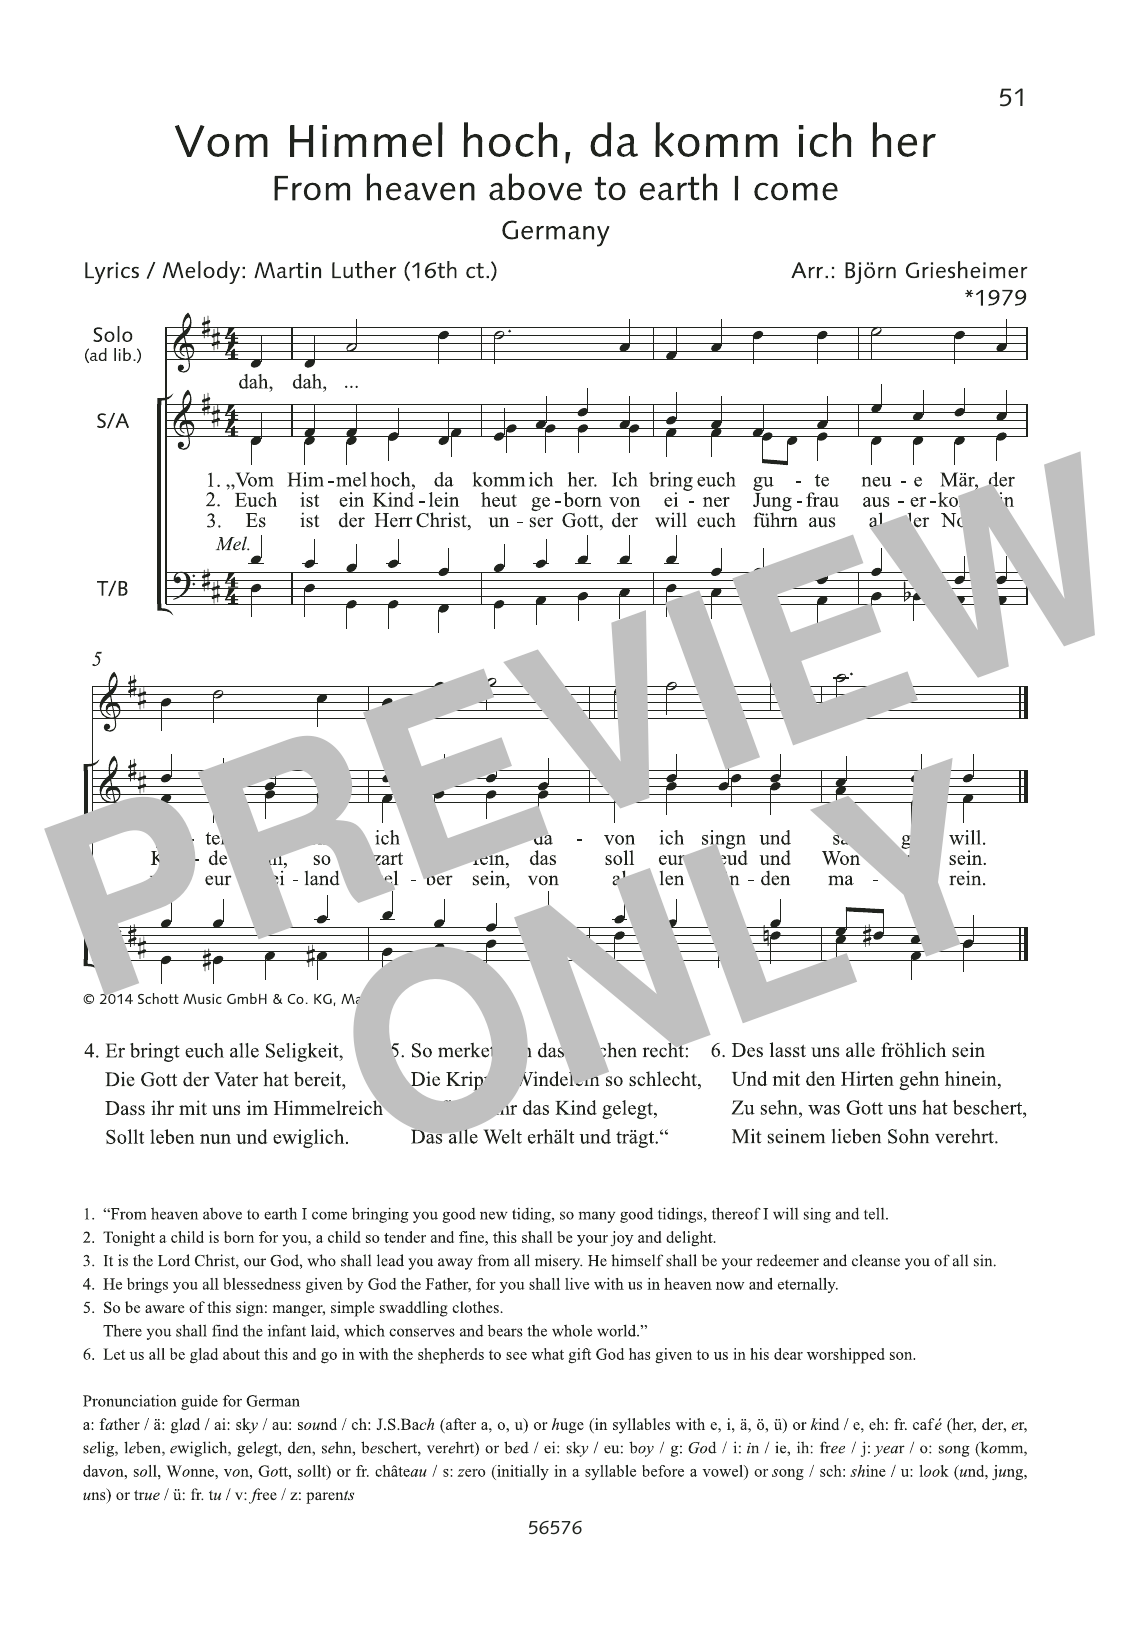 Martin Luther Vom Himmel hoch, da komm ich her sheet music preview music notes and score for Choir including 1 page(s)